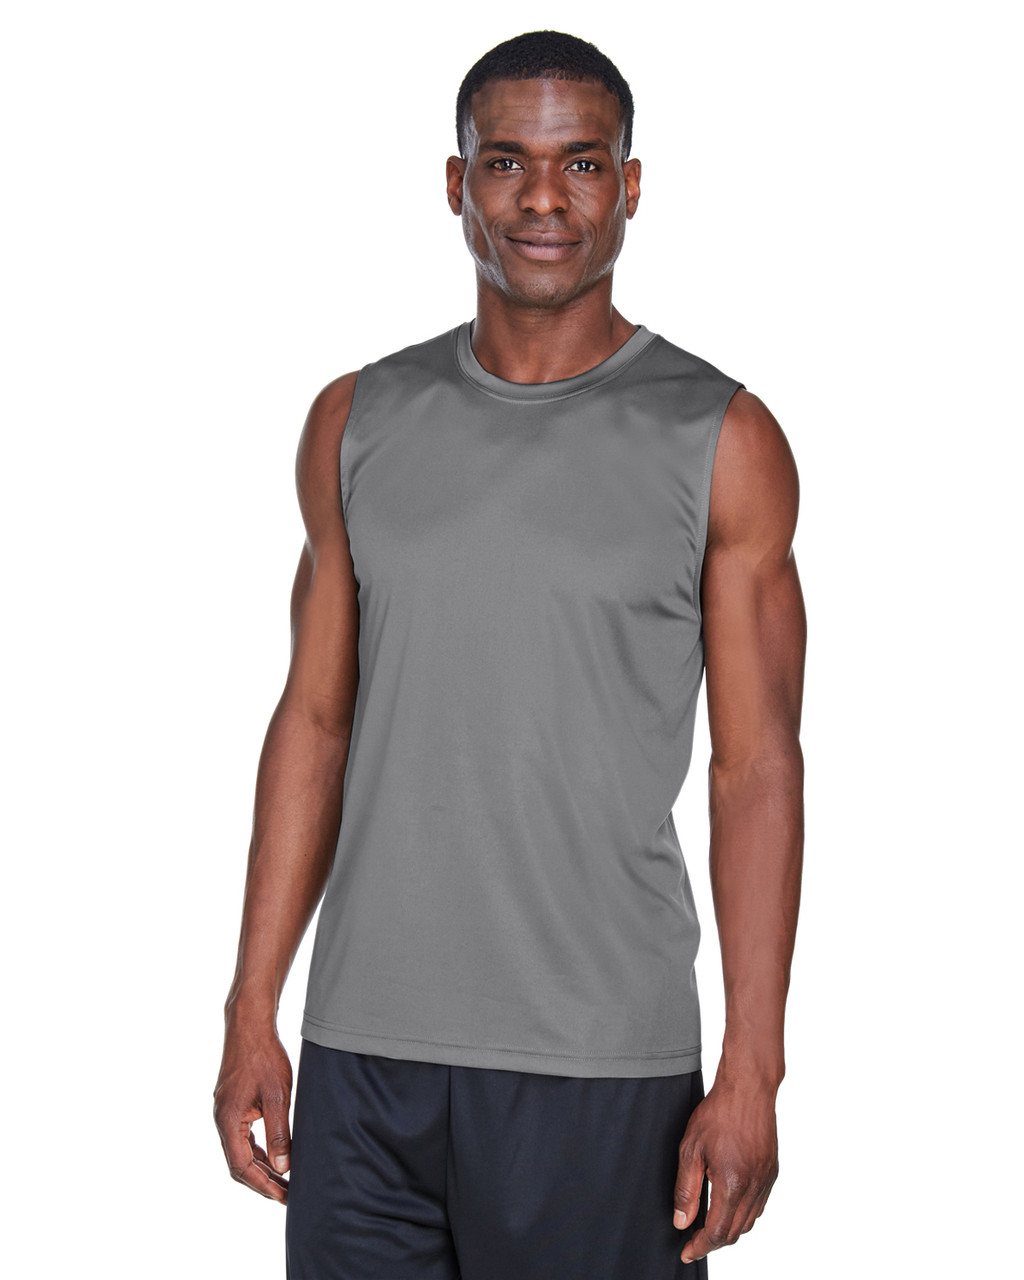 Sport Graphite - TT11M Team 365 Men's Performance Muscle T-Shirt | BlankClothing.ca